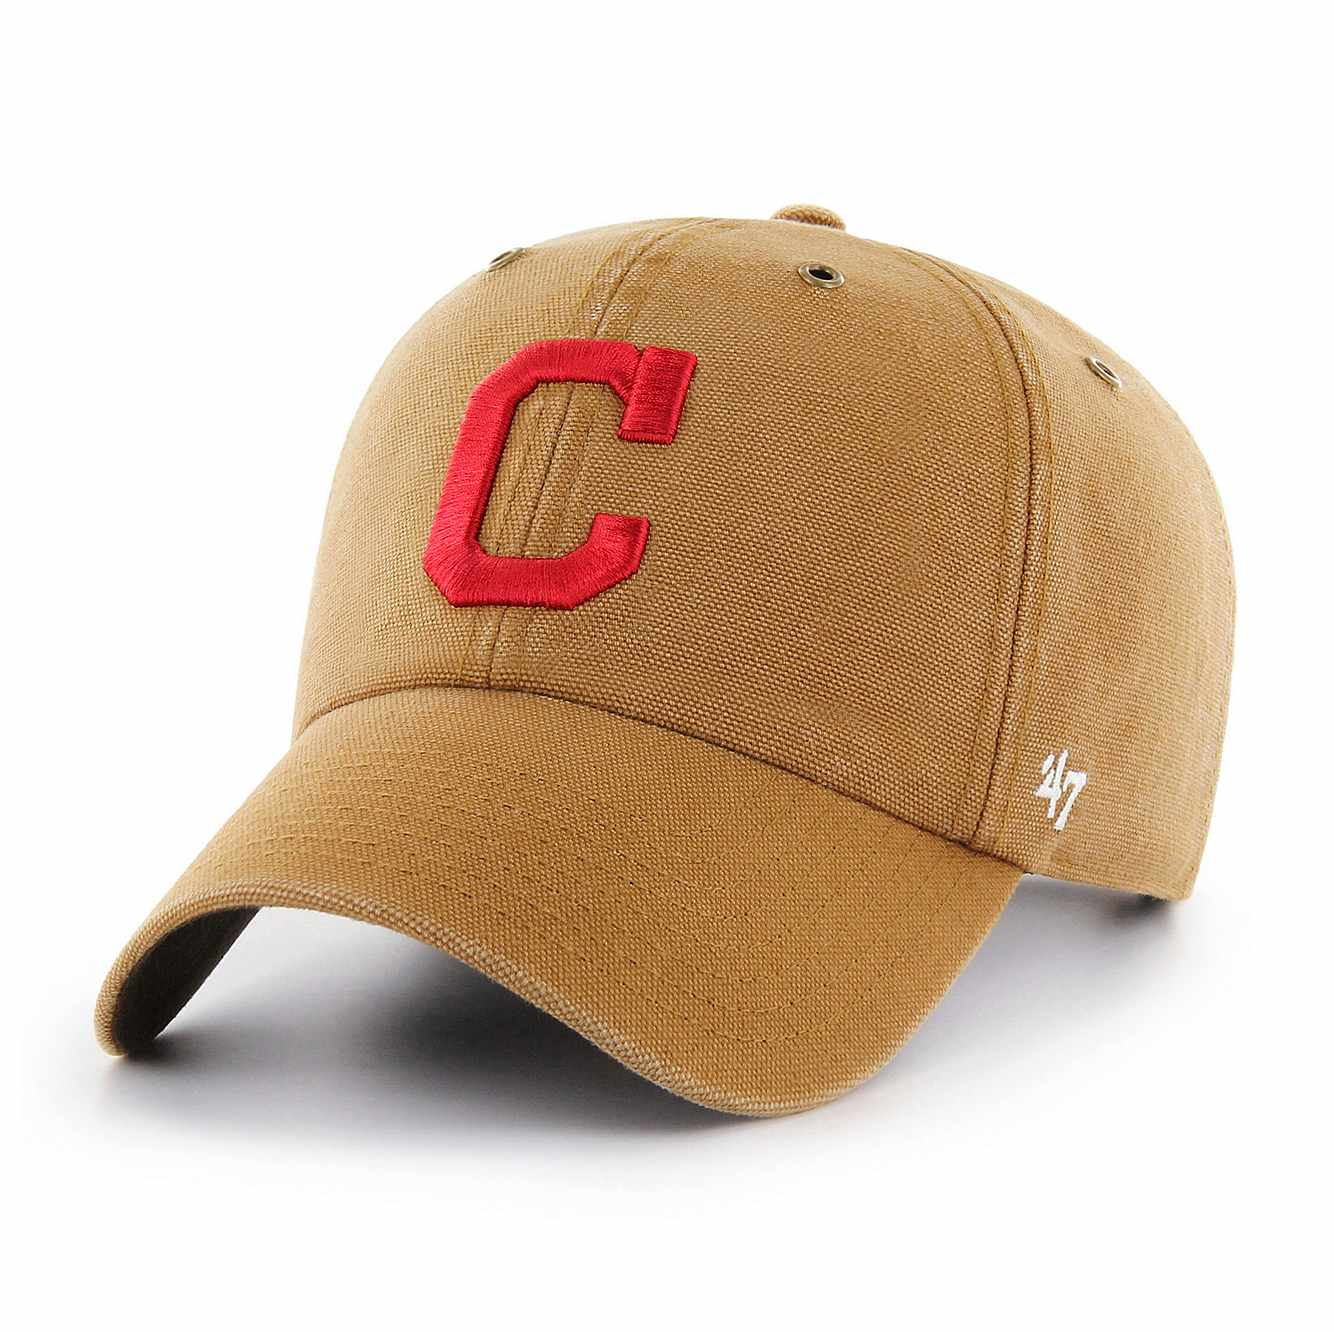 Picture of Cleveland Indians Carhartt x '47 Clean Up in Carhartt Brown